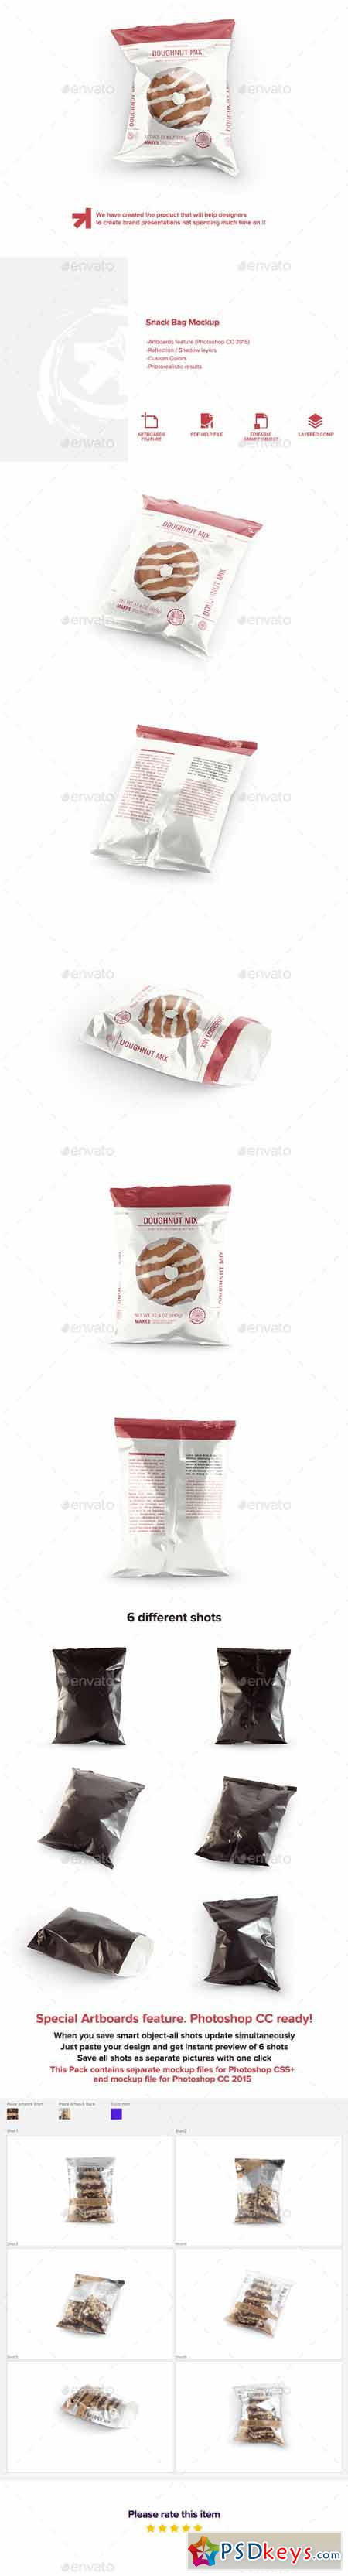 Snack Bag Pouch Mockup 13434996